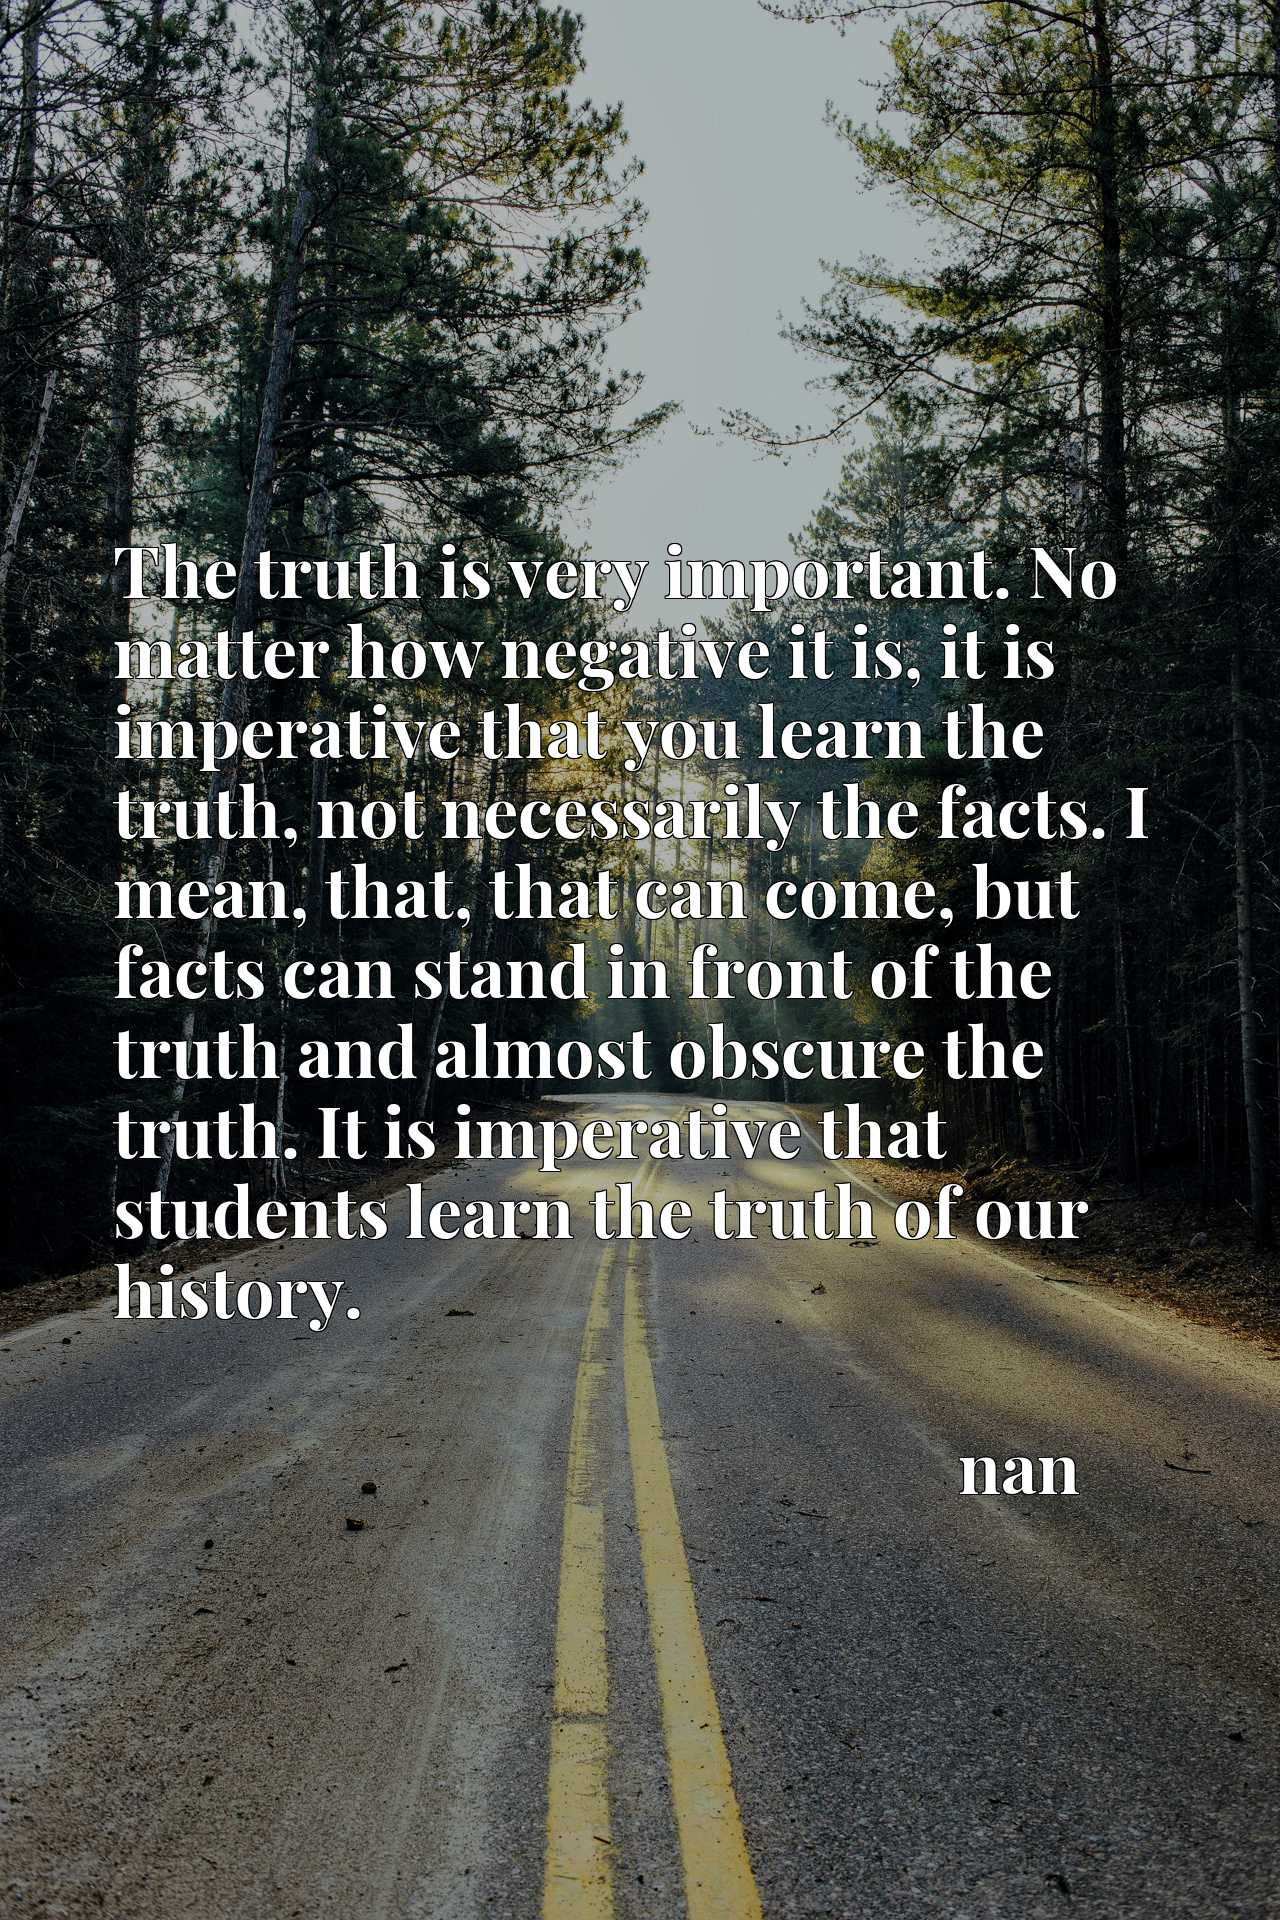 The truth is very important. No matter how negative it is, it is imperative that you learn the truth, not necessarily the facts. I mean, that, that can come, but facts can stand in front of the truth and almost obscure the truth. It is imperative that students learn the truth of our history.